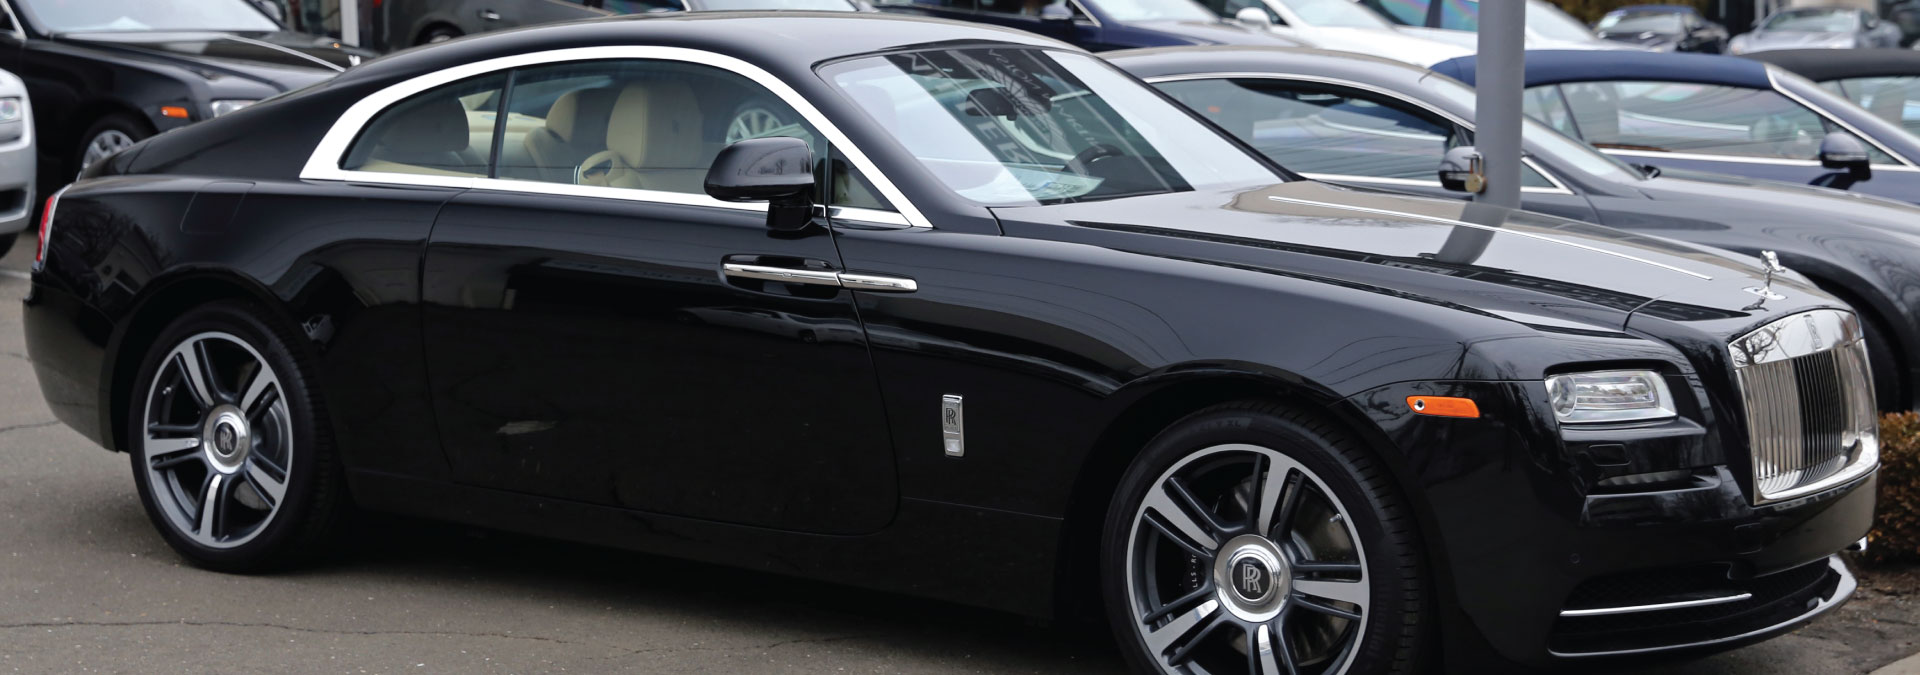 rolls royce tuning and programming on all models